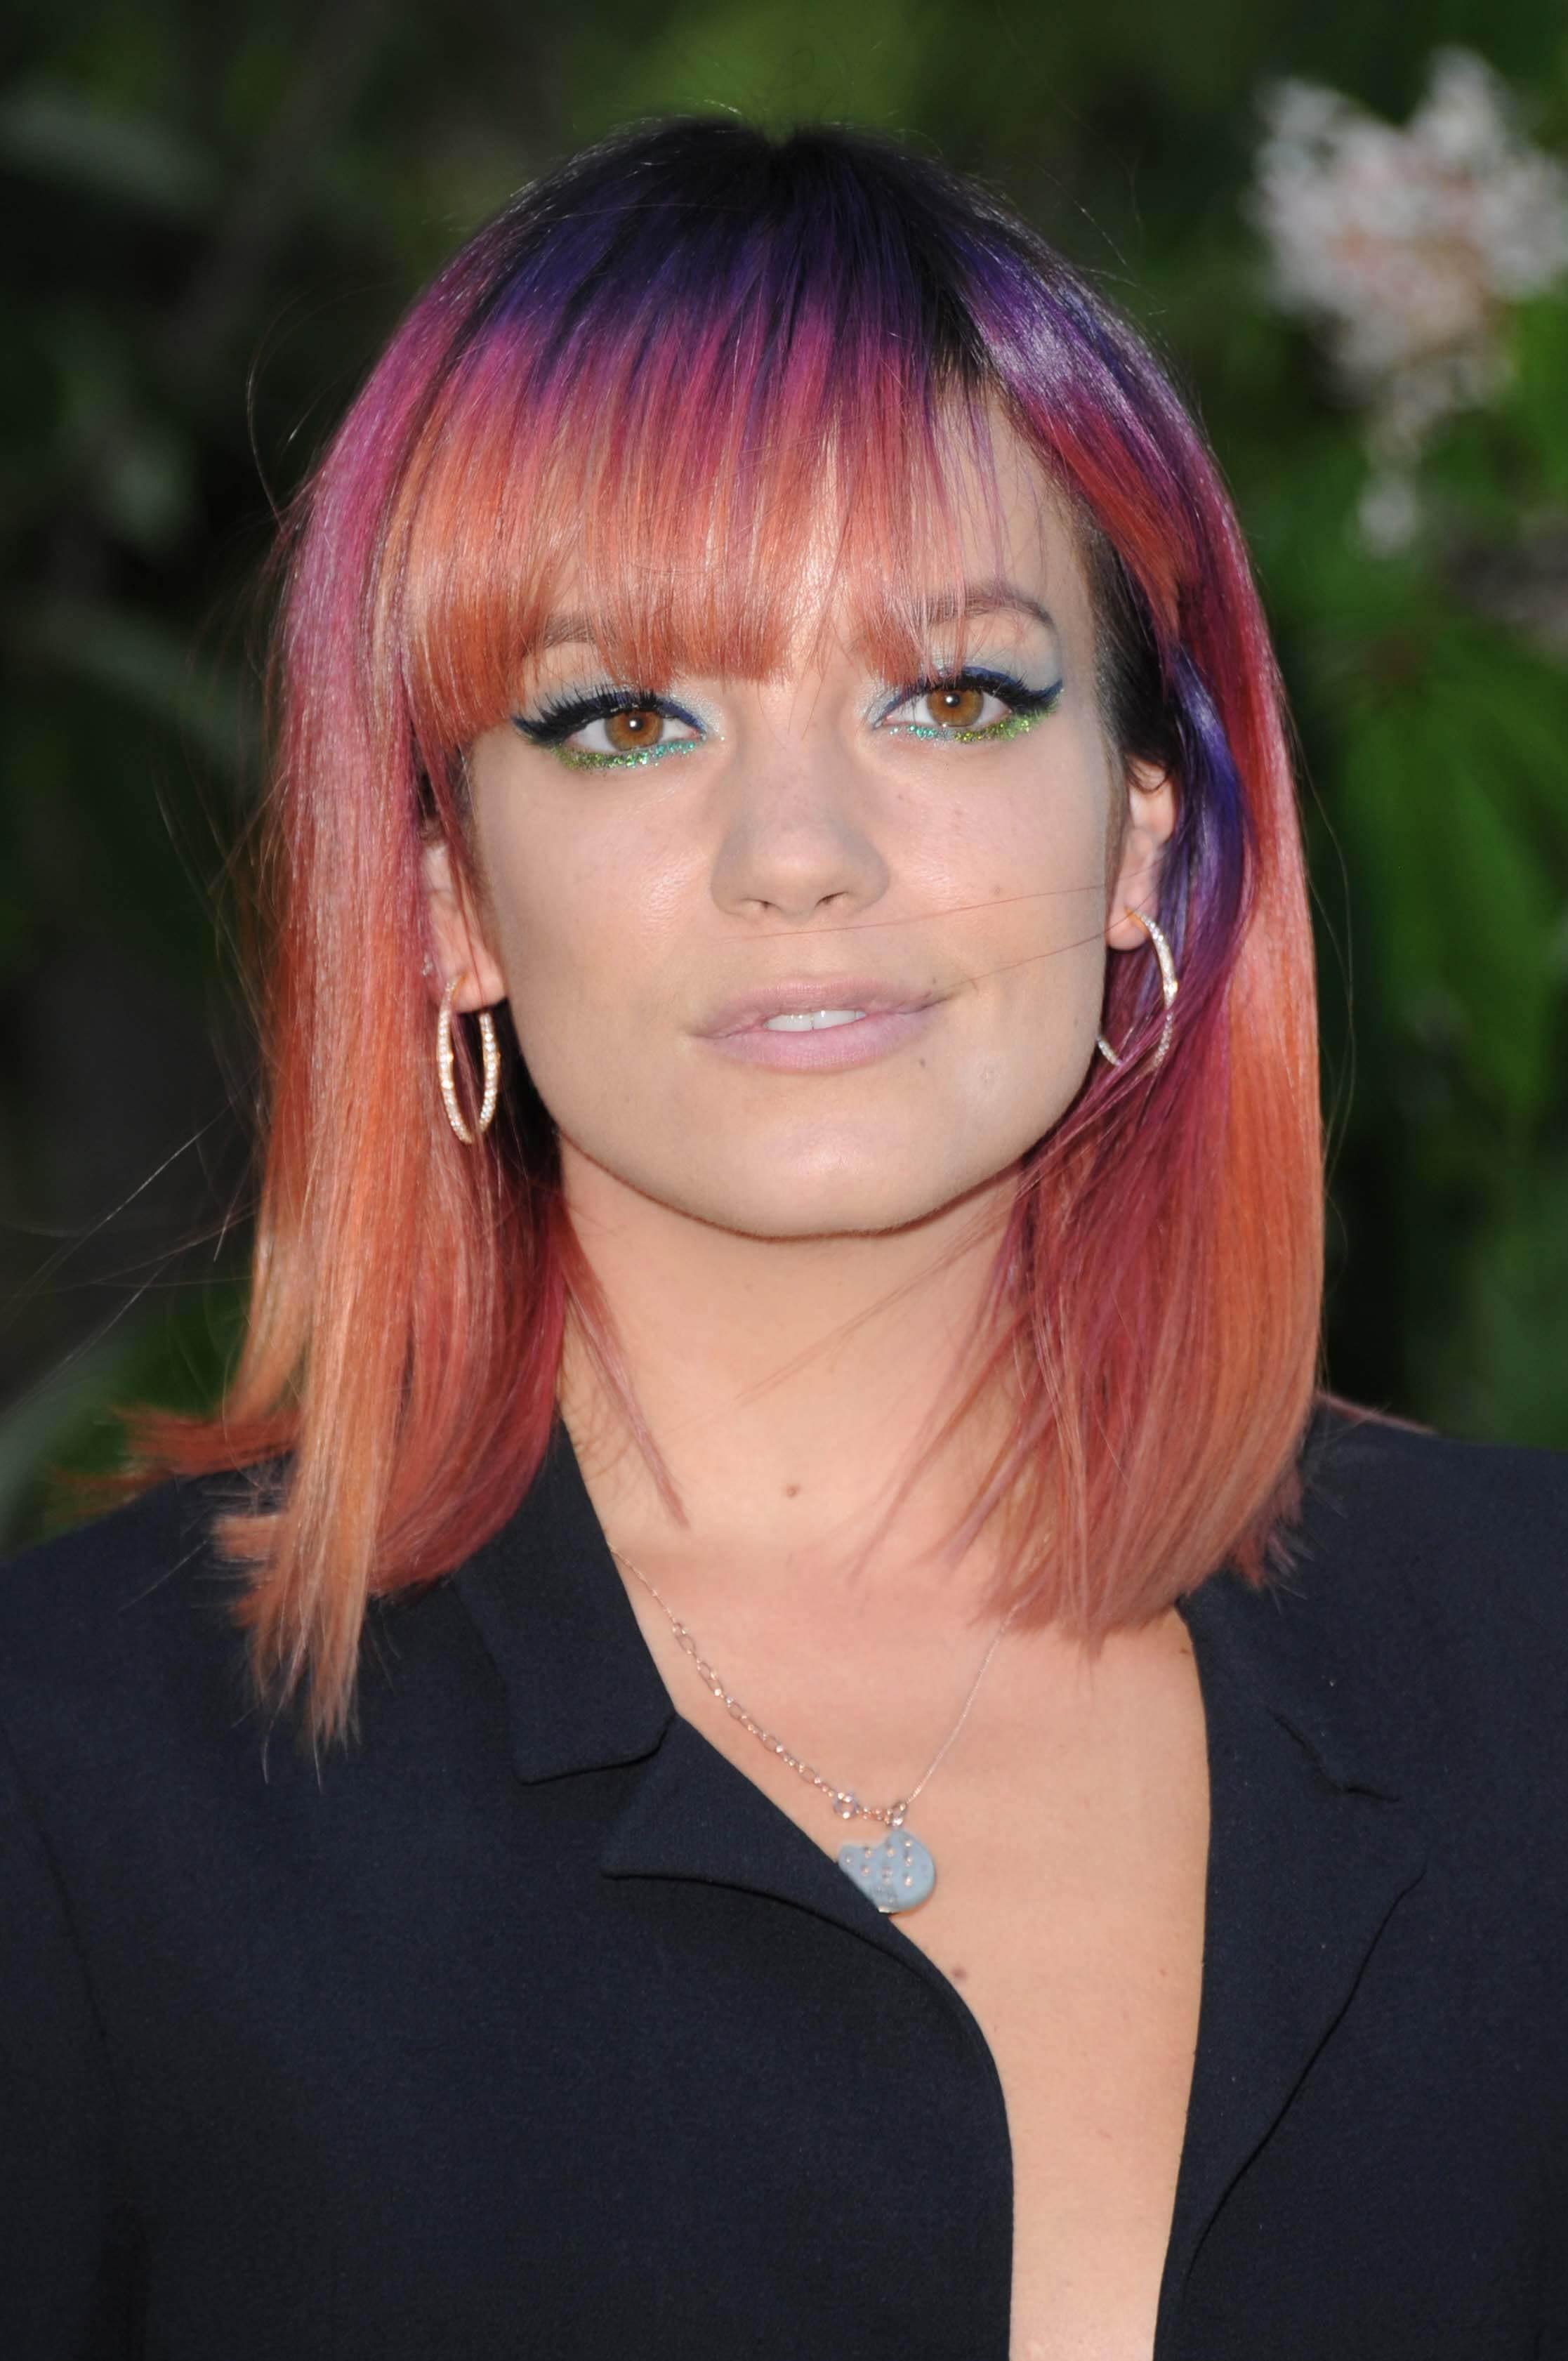 Lily Allen dip-dyed hair